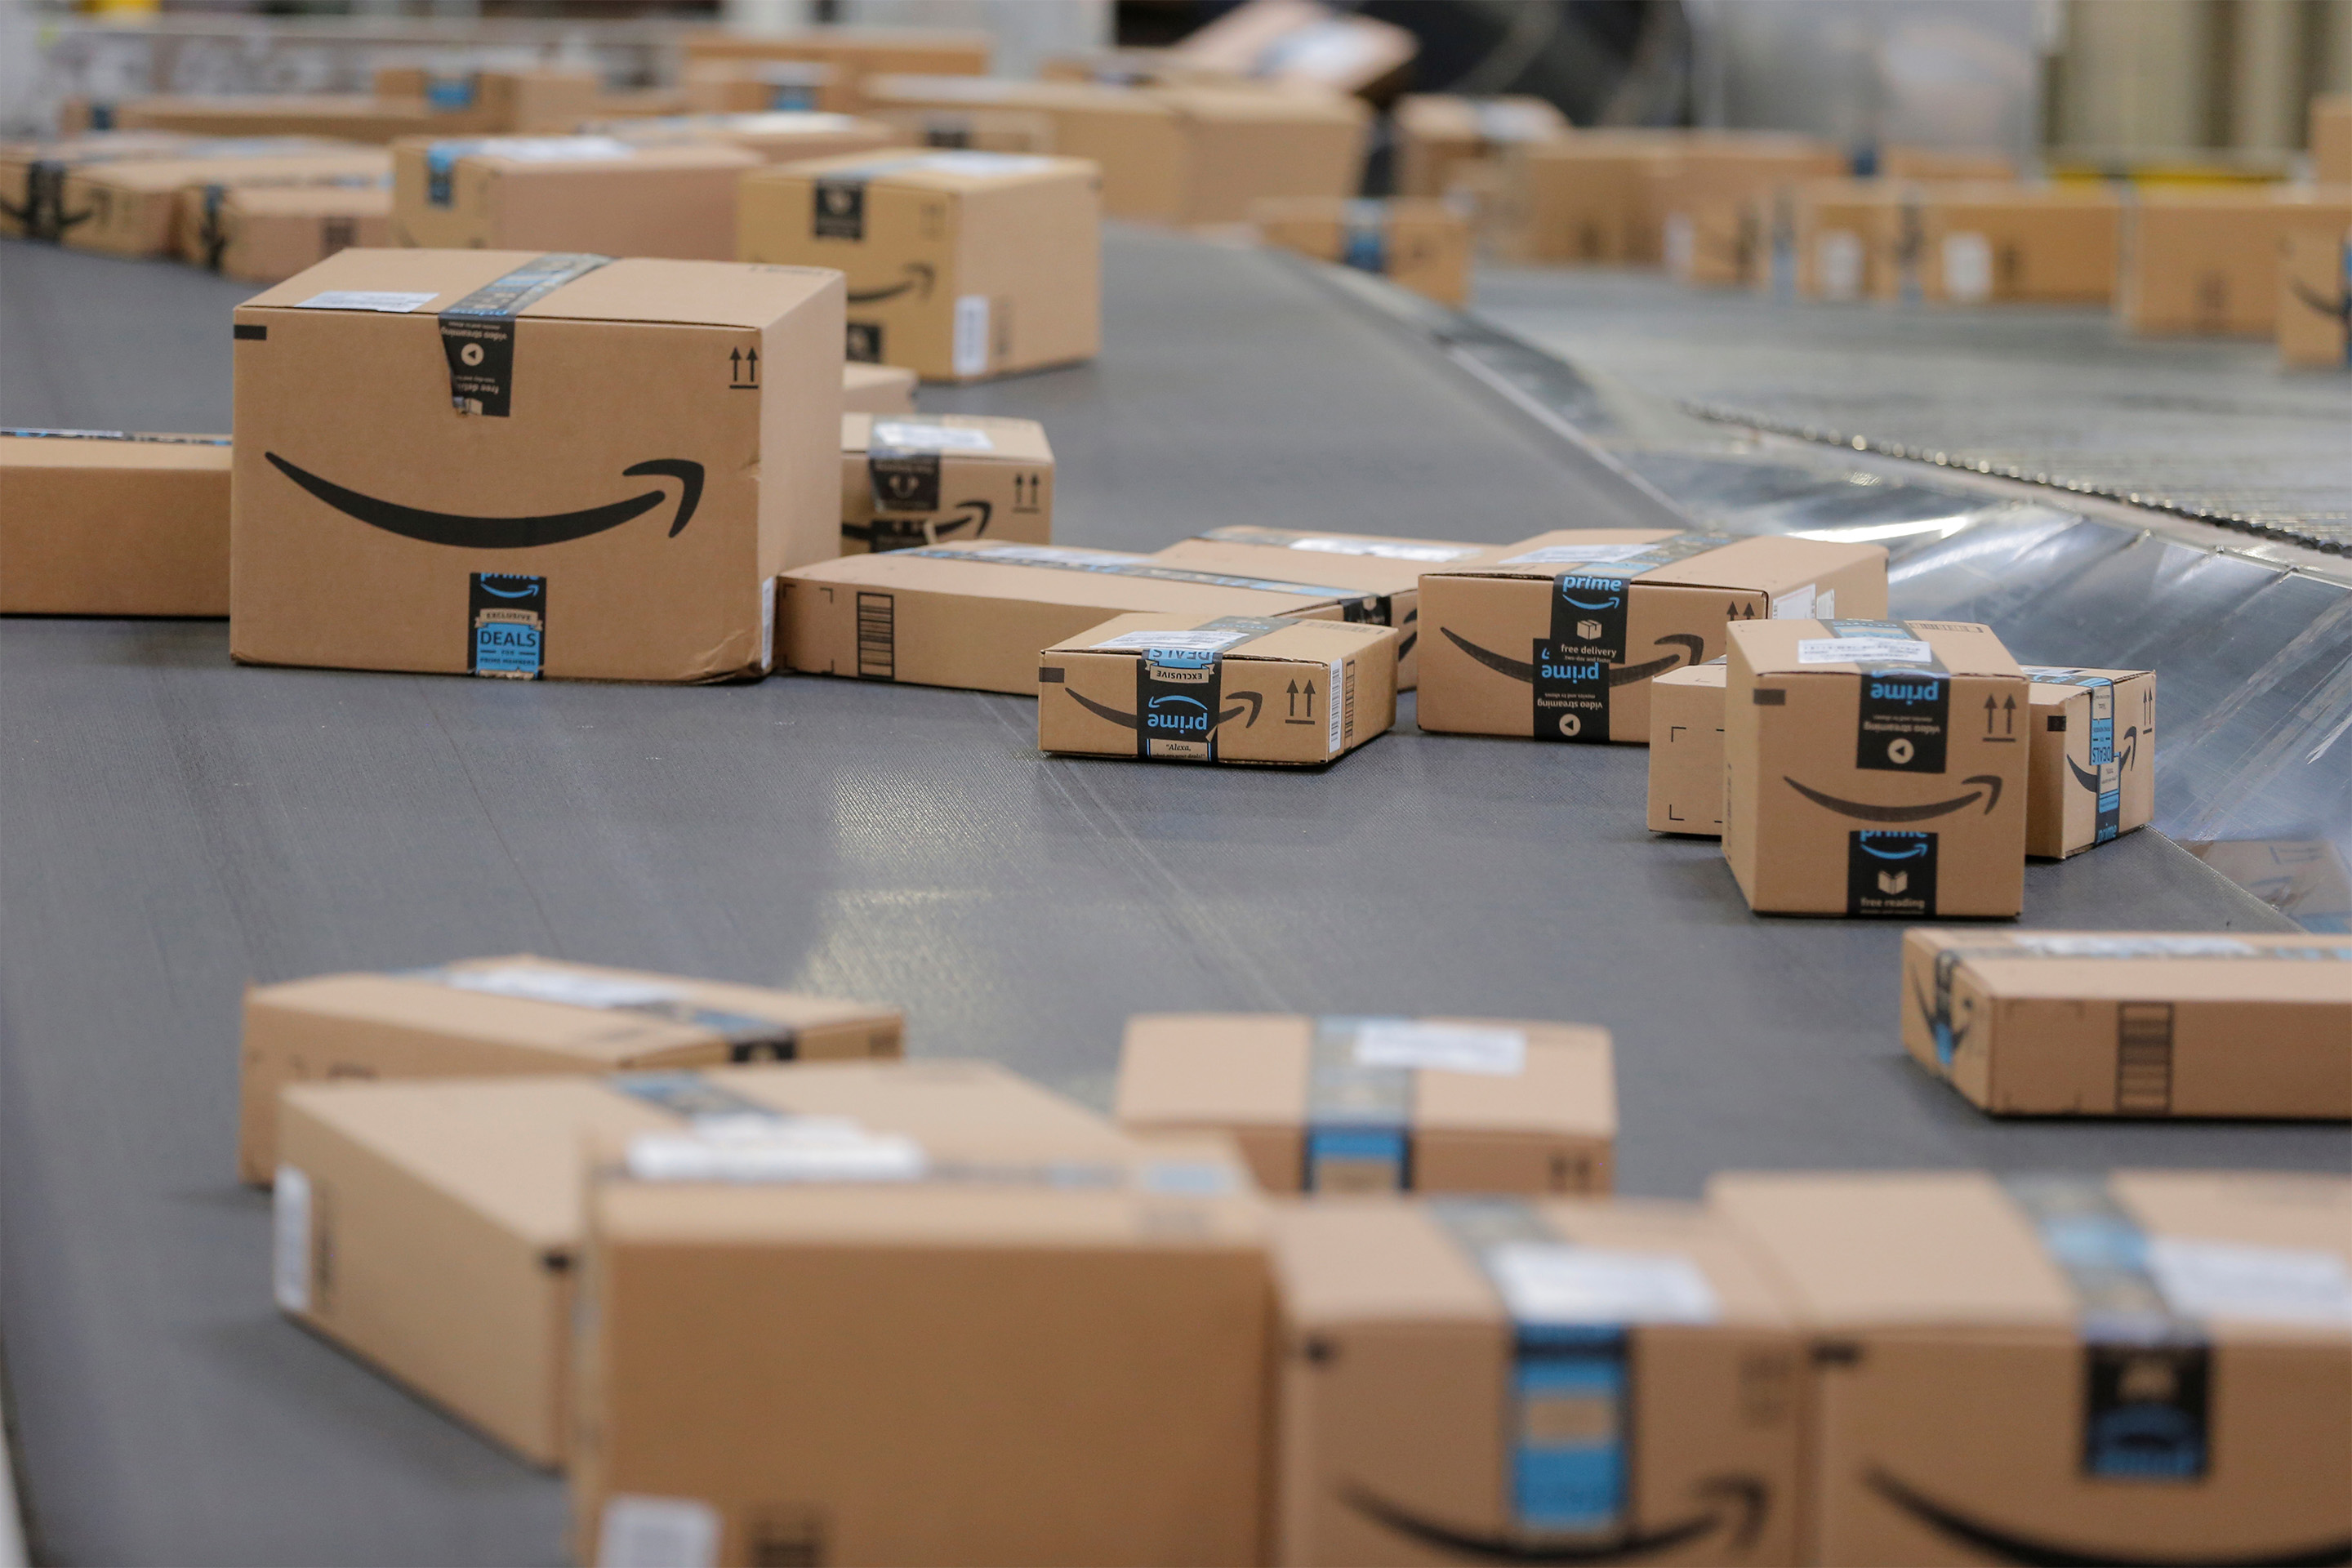 With Prime Day Looming, Amazon Faces Warehouse Strikes in Europe